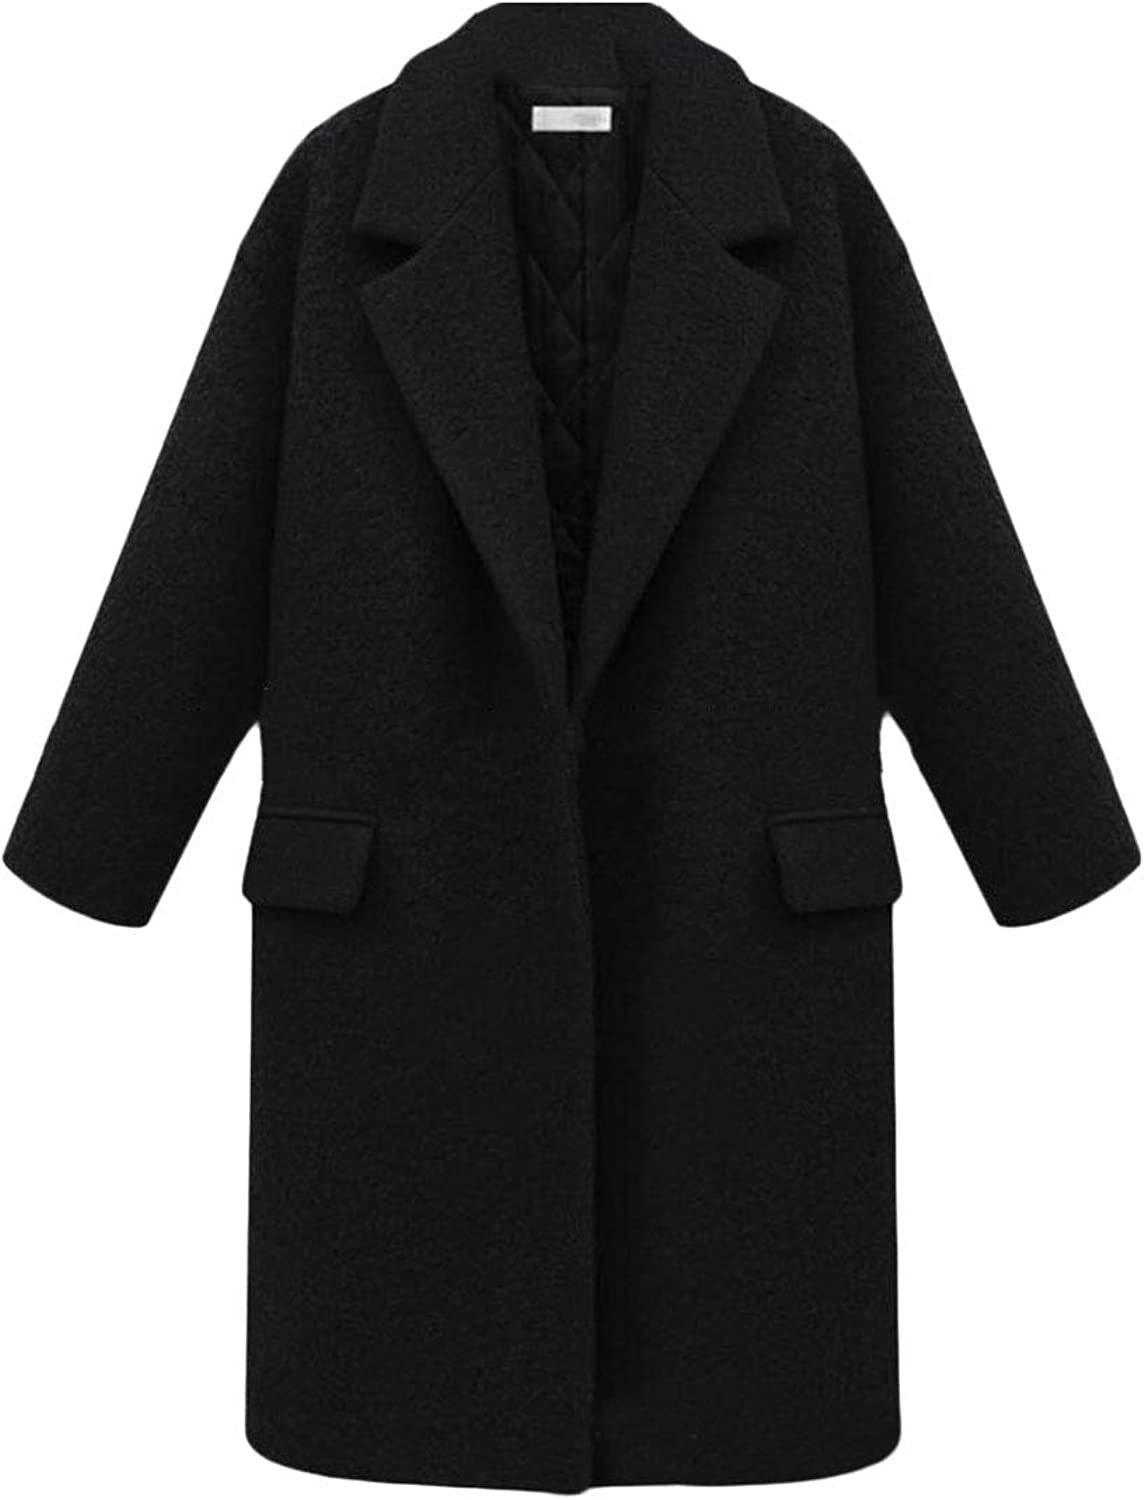 Esast Womens Outwear Overcoat Trench Coat Winter Open Front Peacoat